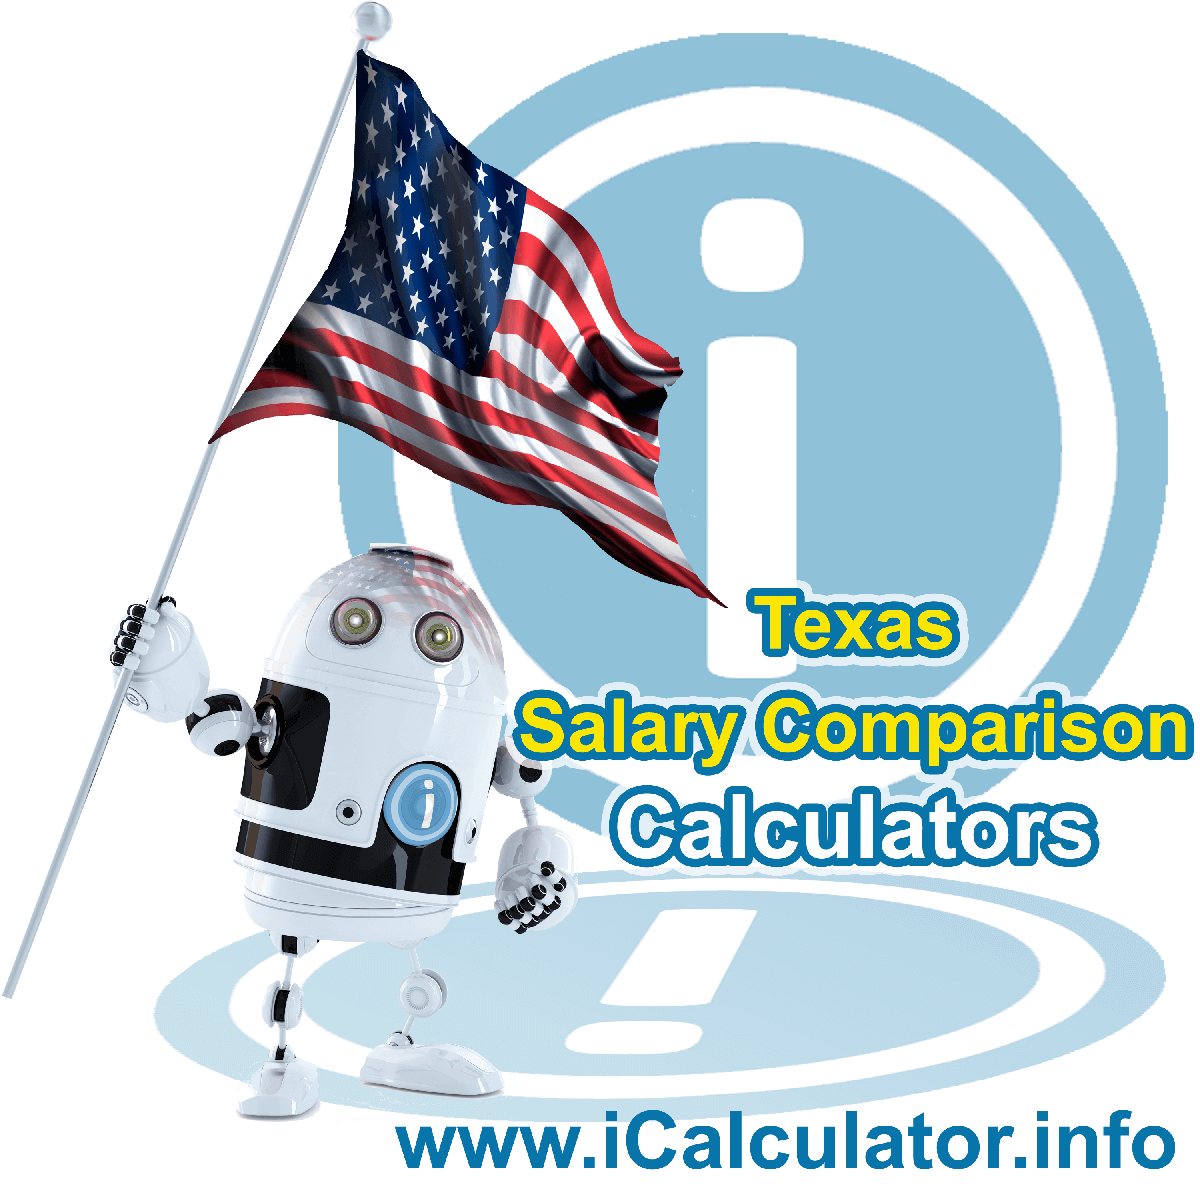 Texas Salary Comparison Calculator 2019 | iCalculator | The Texas Salary Comparison Calculator allows you to quickly calculate and compare upto 6 salaries in Texas or between other states for the 2019 tax year and historical tax years. Its an excellent tool for jobseekers, pay raise comparison and comparison of salaries between different US States